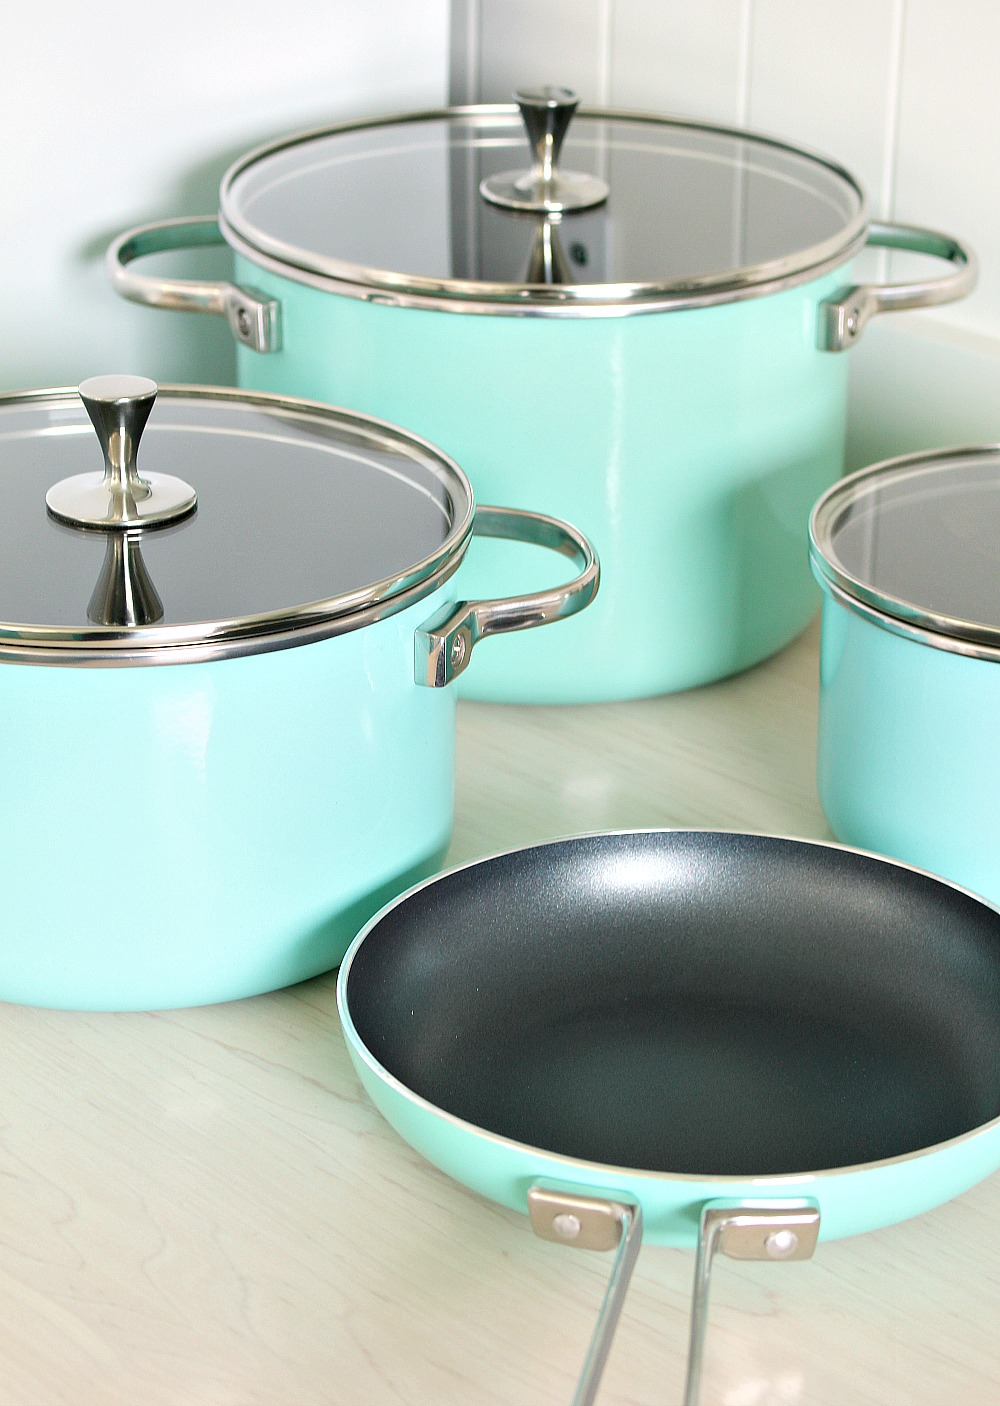 Turquoise Pots and Pans